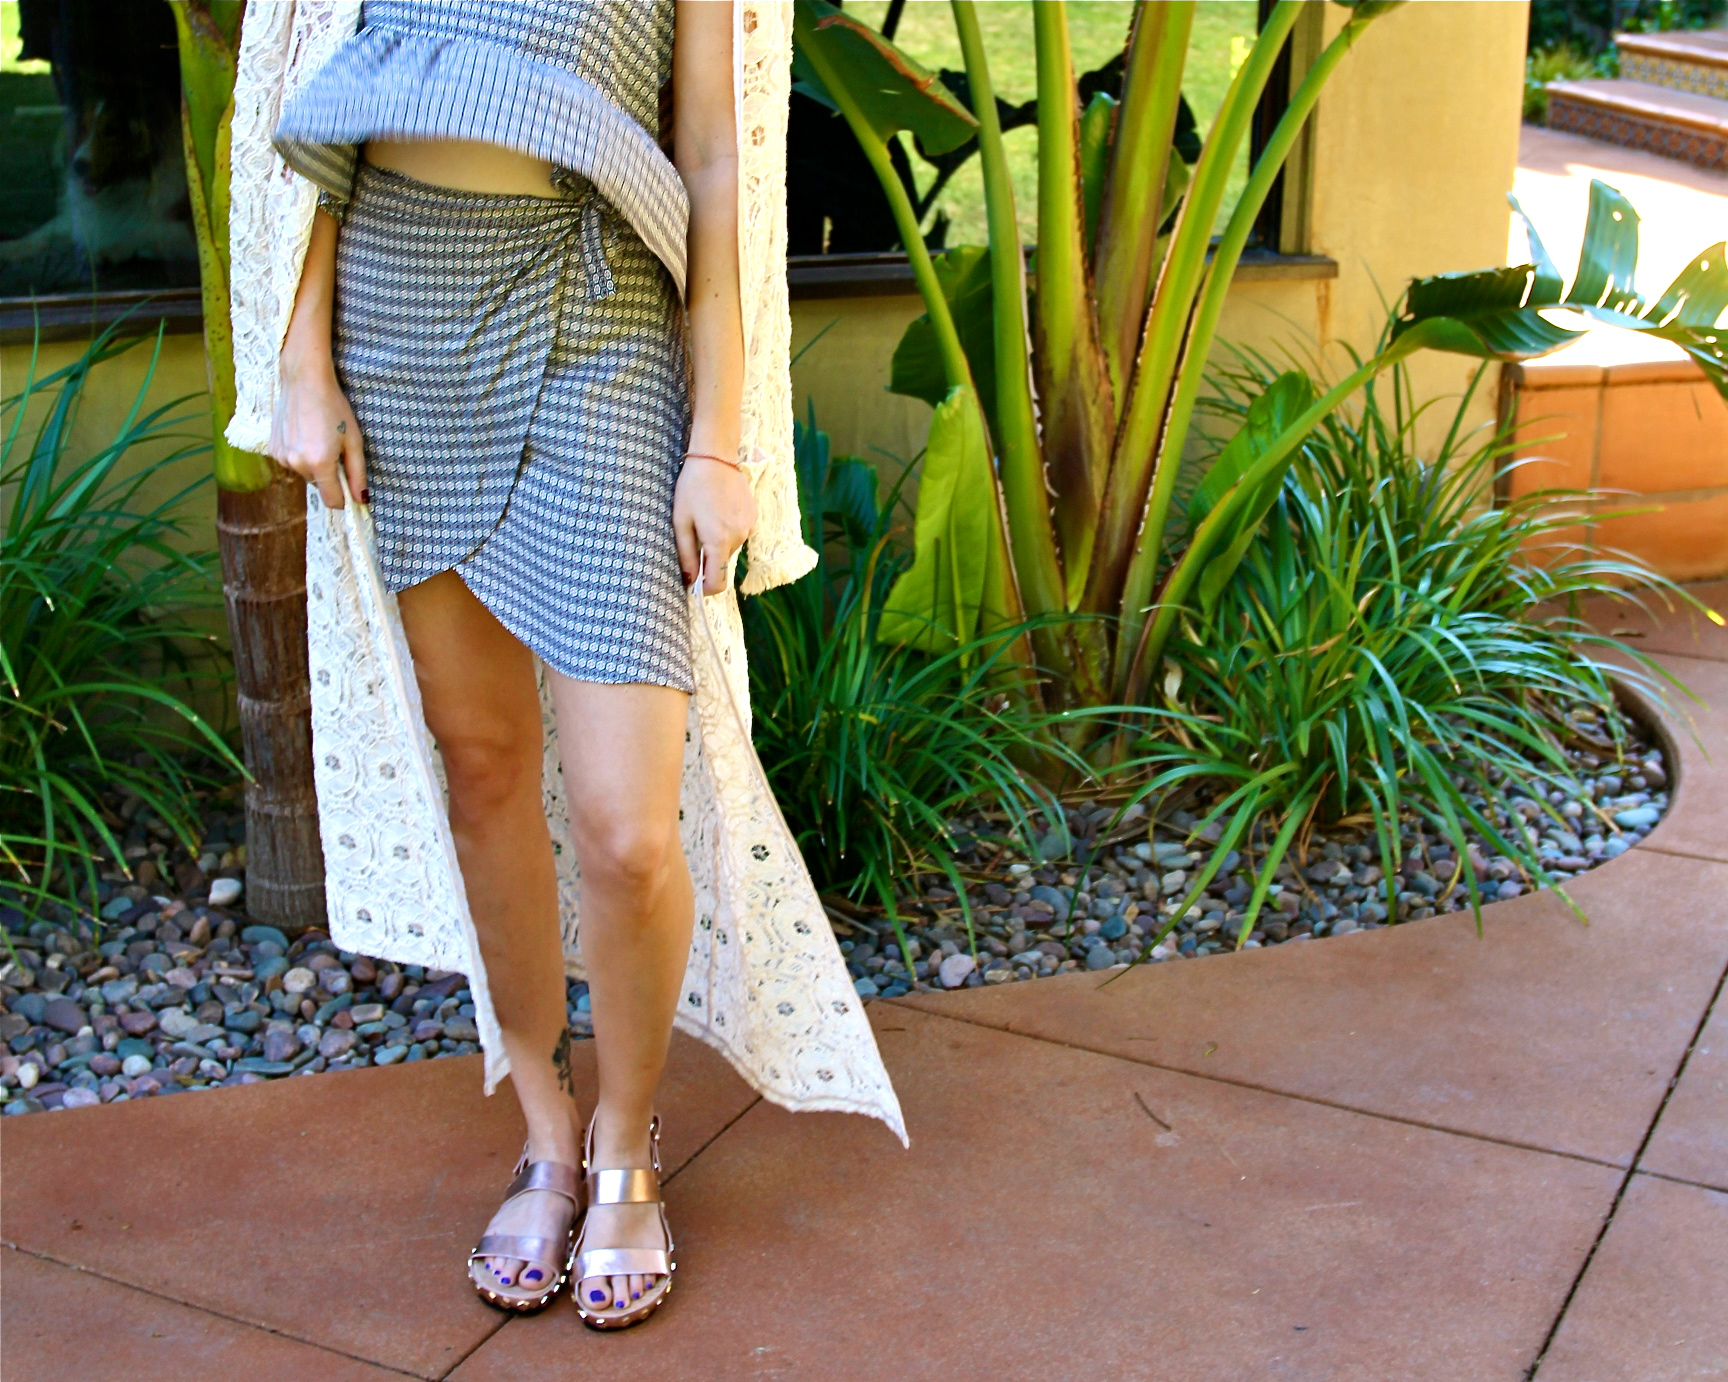 Top + Skirt - BCBGeneration | Shoes - Rebecca Minkoff | Shades - Burberry || photos by Sarah Hardcastle